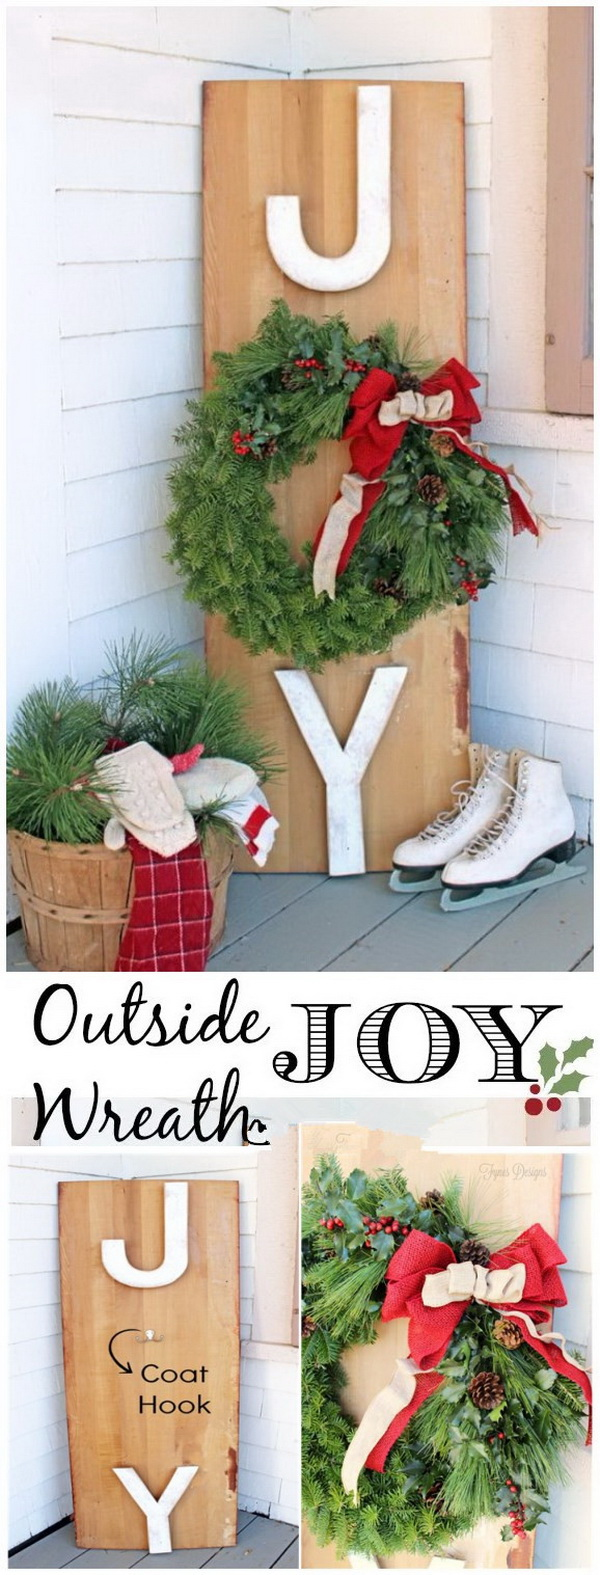 Outside Joy Wreath. Make a fresh evergreen wreath and attach it to a joy sign. It is classic and festive at the same time.